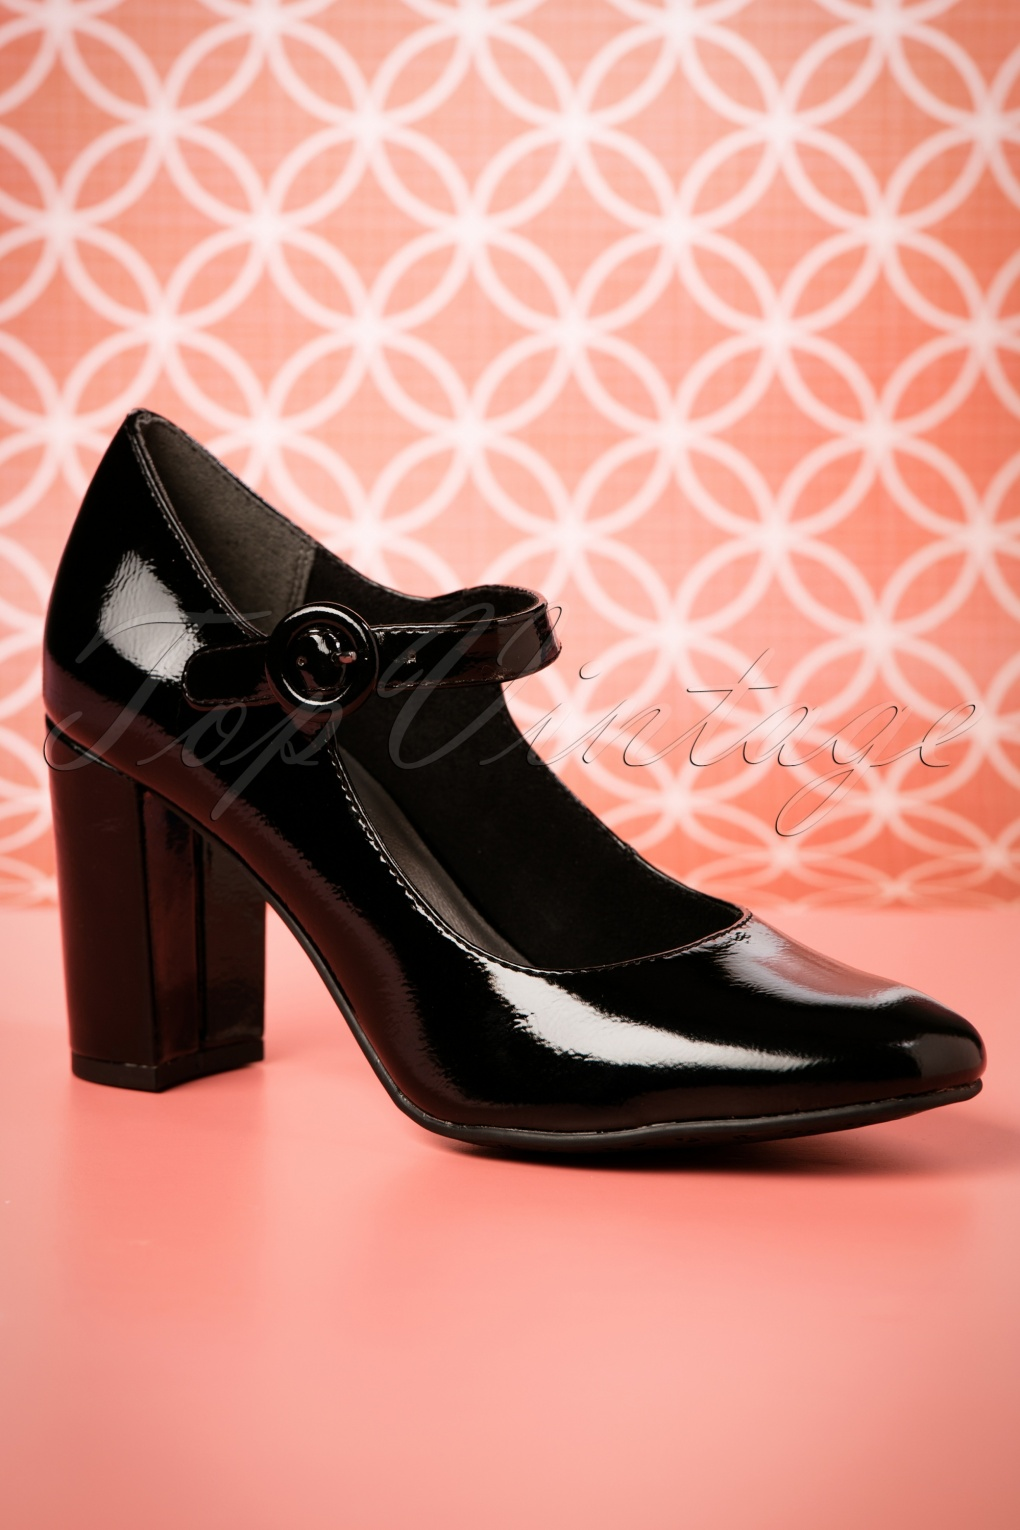 Vintage Style Shoes, Vintage Inspired Shoes 60s Mary Jane Lacquer Pumps in Black £45.11 AT vintagedancer.com